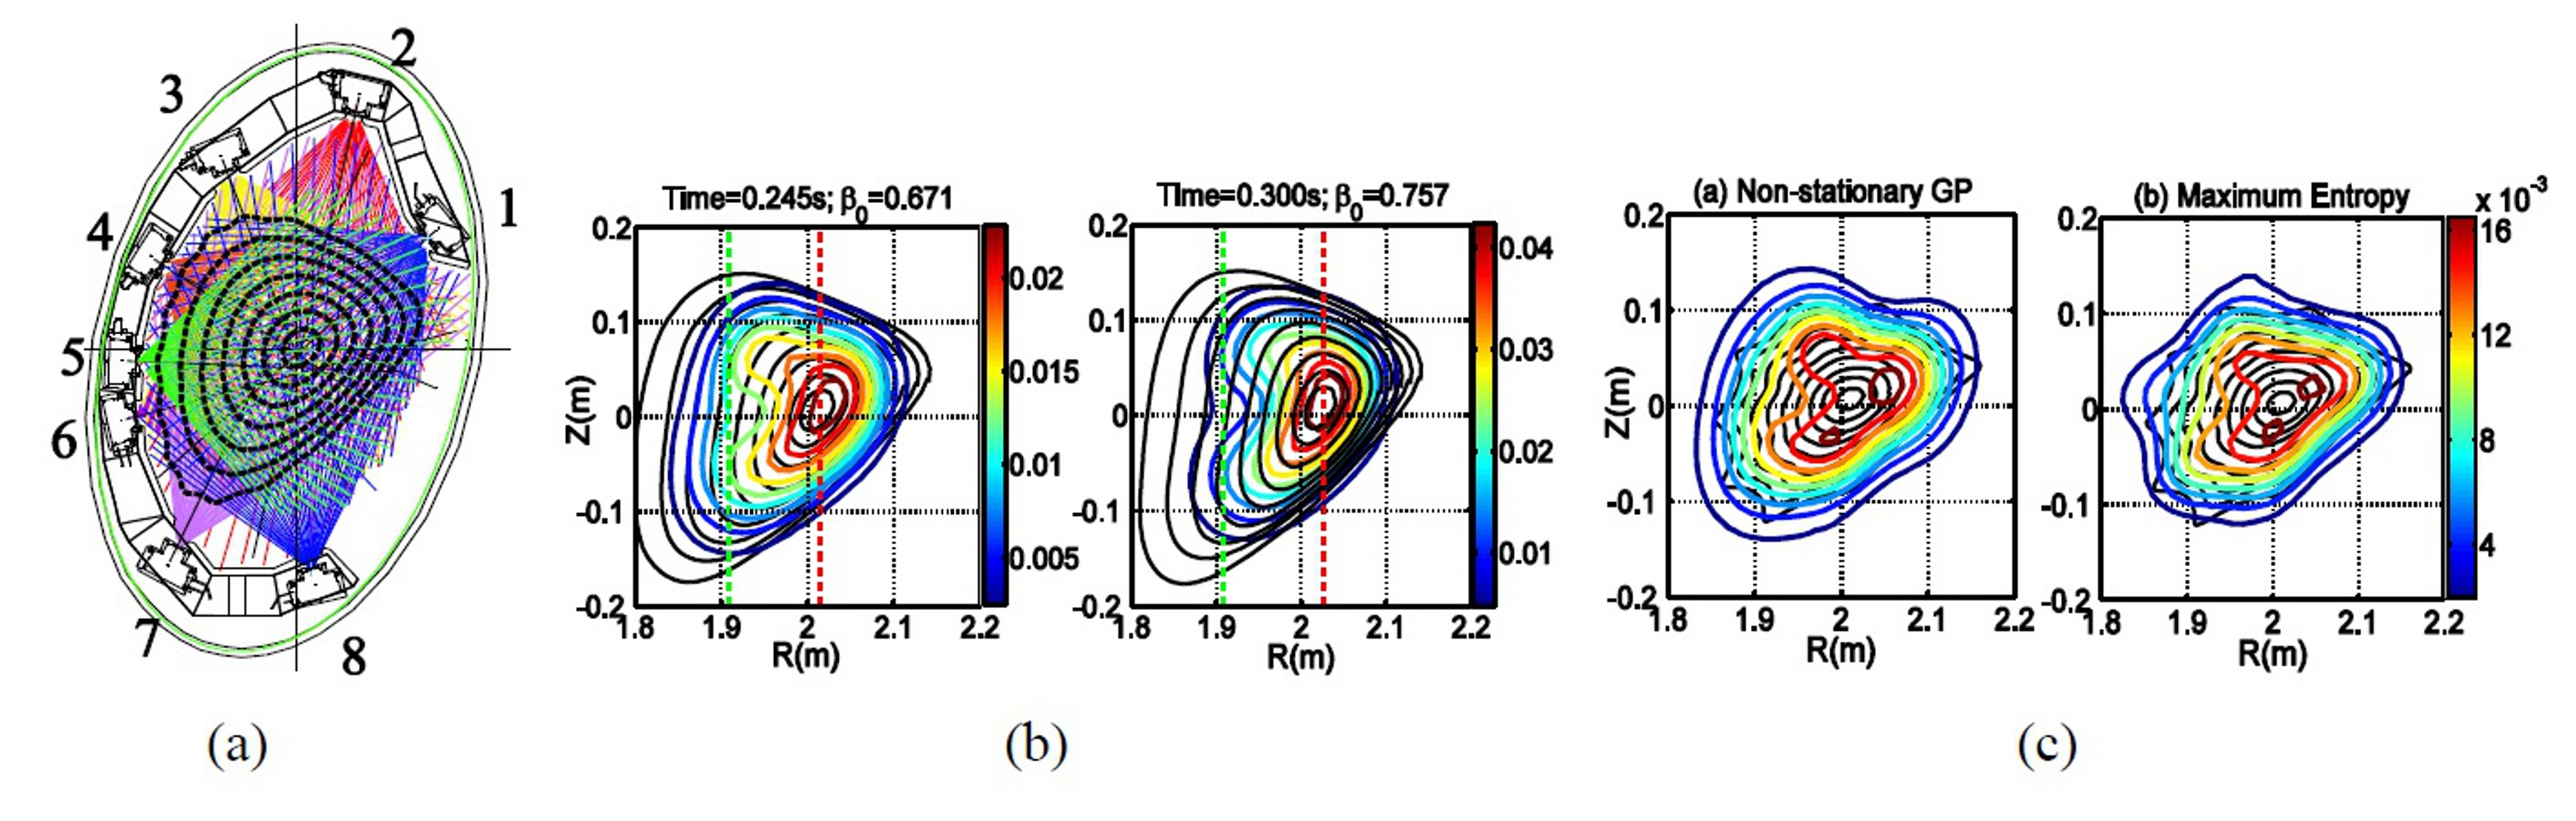 (a) View of the SXR lines-of-sight in the W7-AS stellarator. (b) Left panel: reconstruction of the SXR emissivity contours by means of Gaussian processes. Right panel: reconstruction using the maximum entropy method (MaxEnt). (c) Similar reconstructions in the presence of MHD mode activity. In both cases the developed Gaussian process method performs significantly better than MaxEnt.  (D. Li, PhD thesis; D. Li et al, EPS 2014)